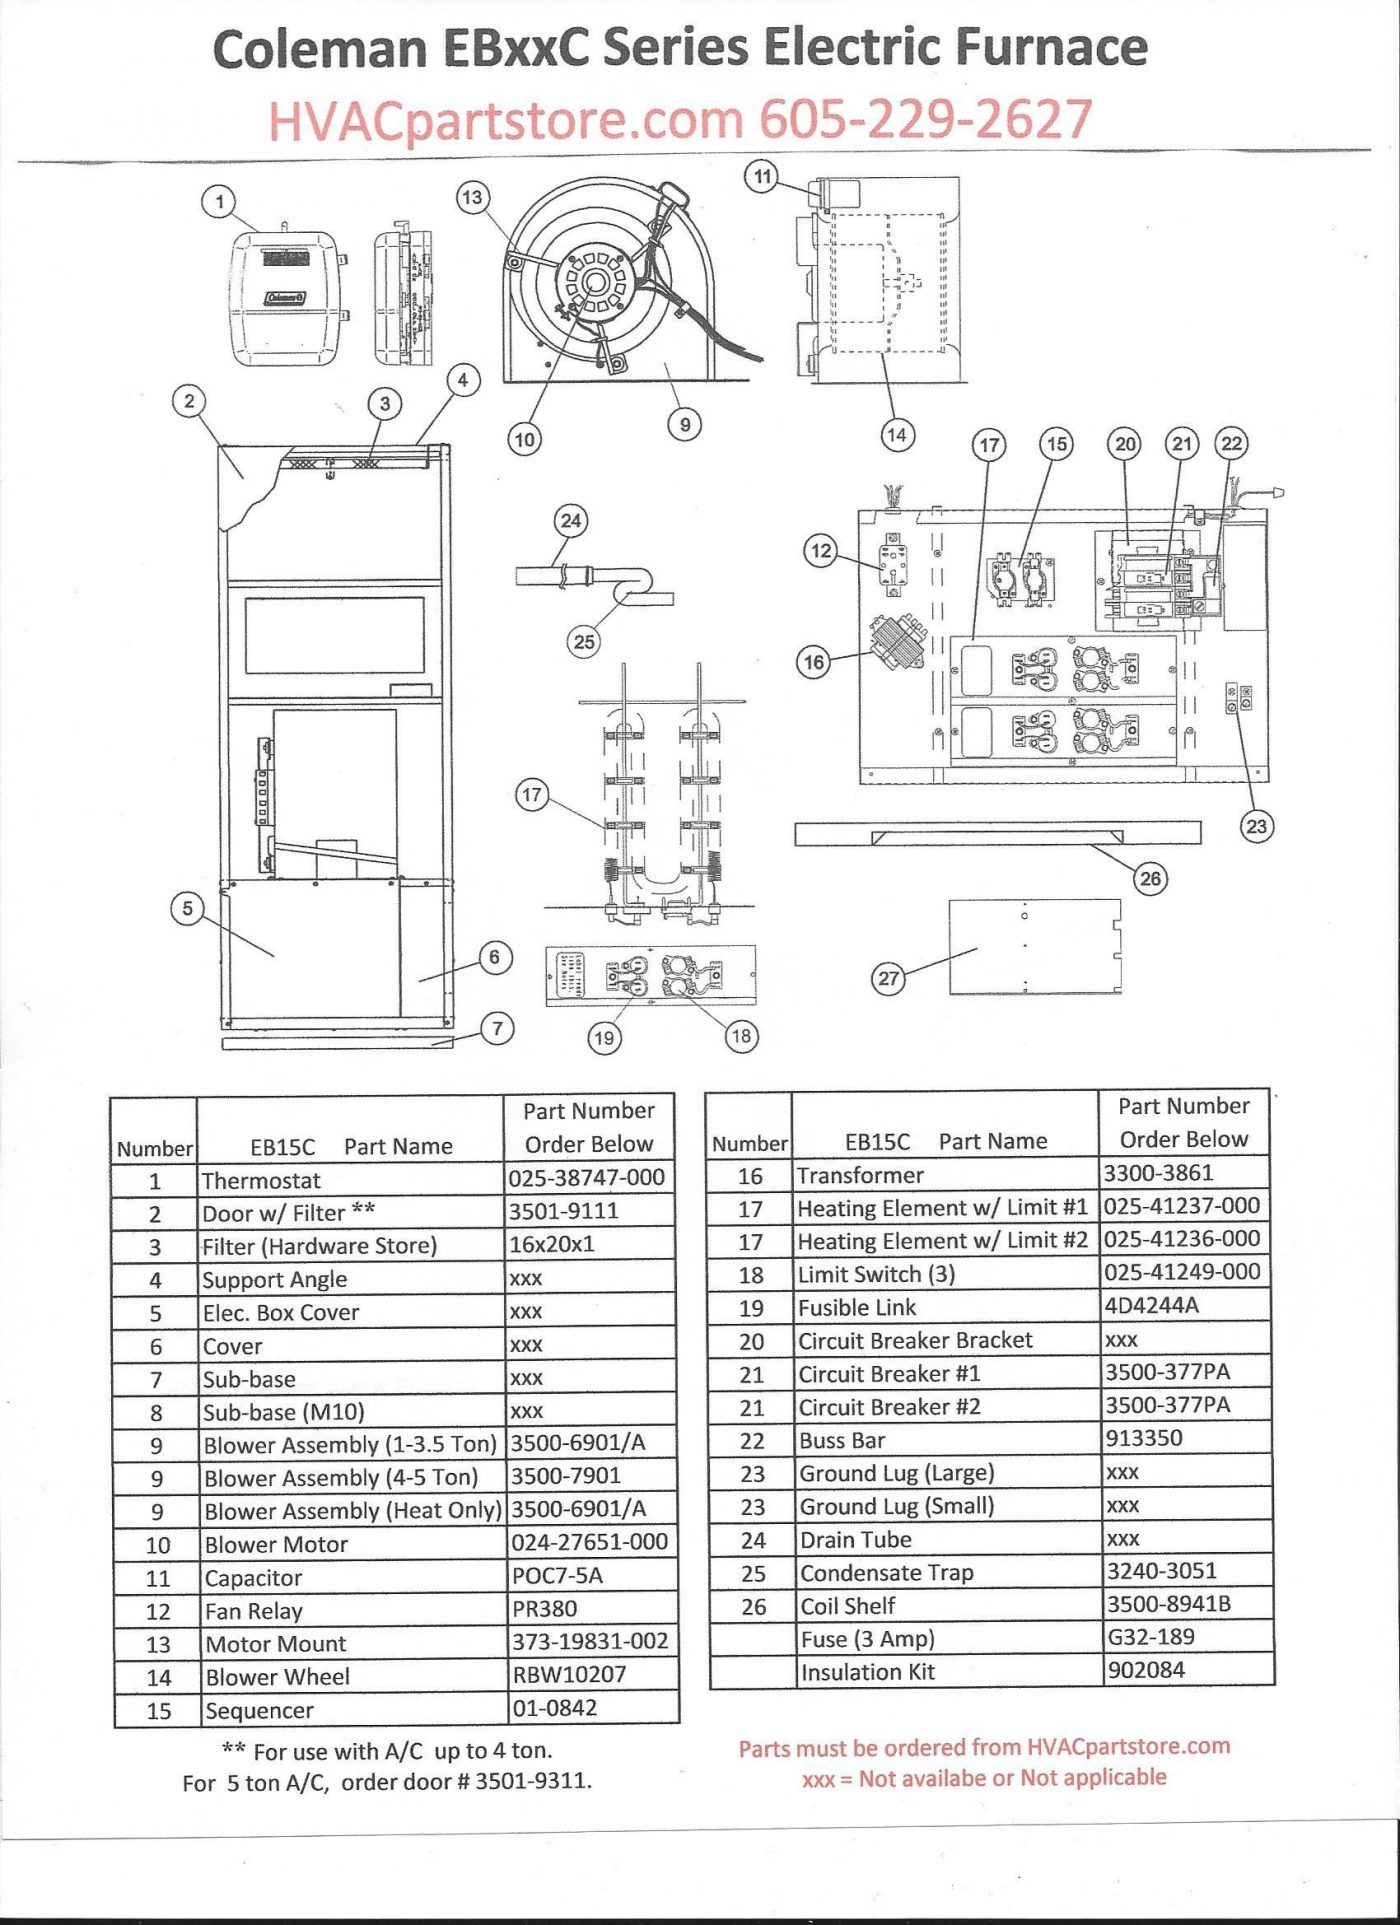 tempstar heat pump wiring diagram Collection-Tempstar Furnace Wiring Diagram New Wire thermostat Tempstar Furnace Manual Pdf Heat Pump Wiring 19-c